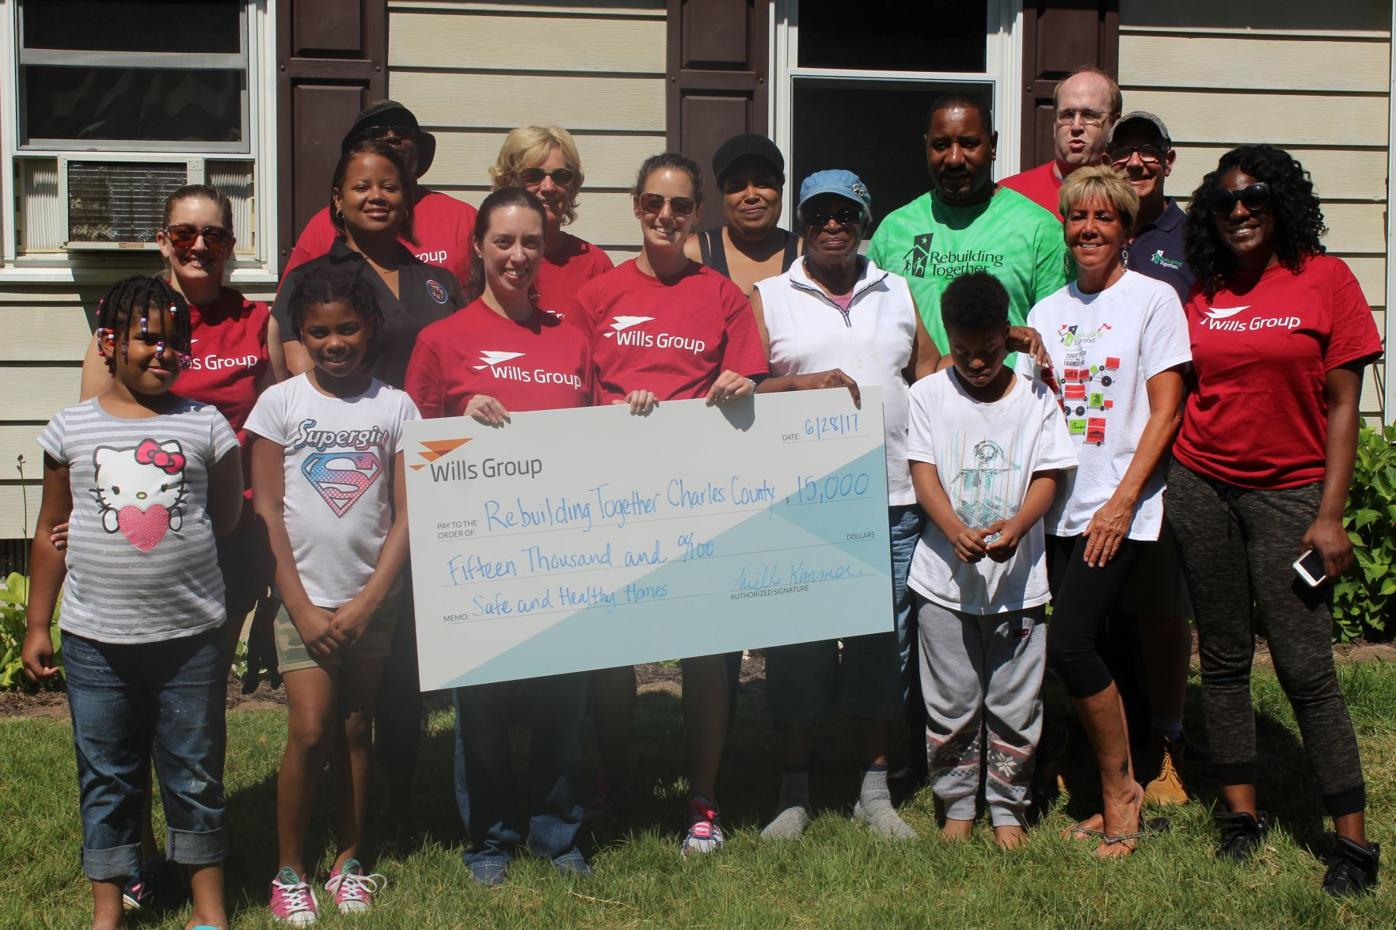 Wills Group partners with Rebuilding Together for home improvement